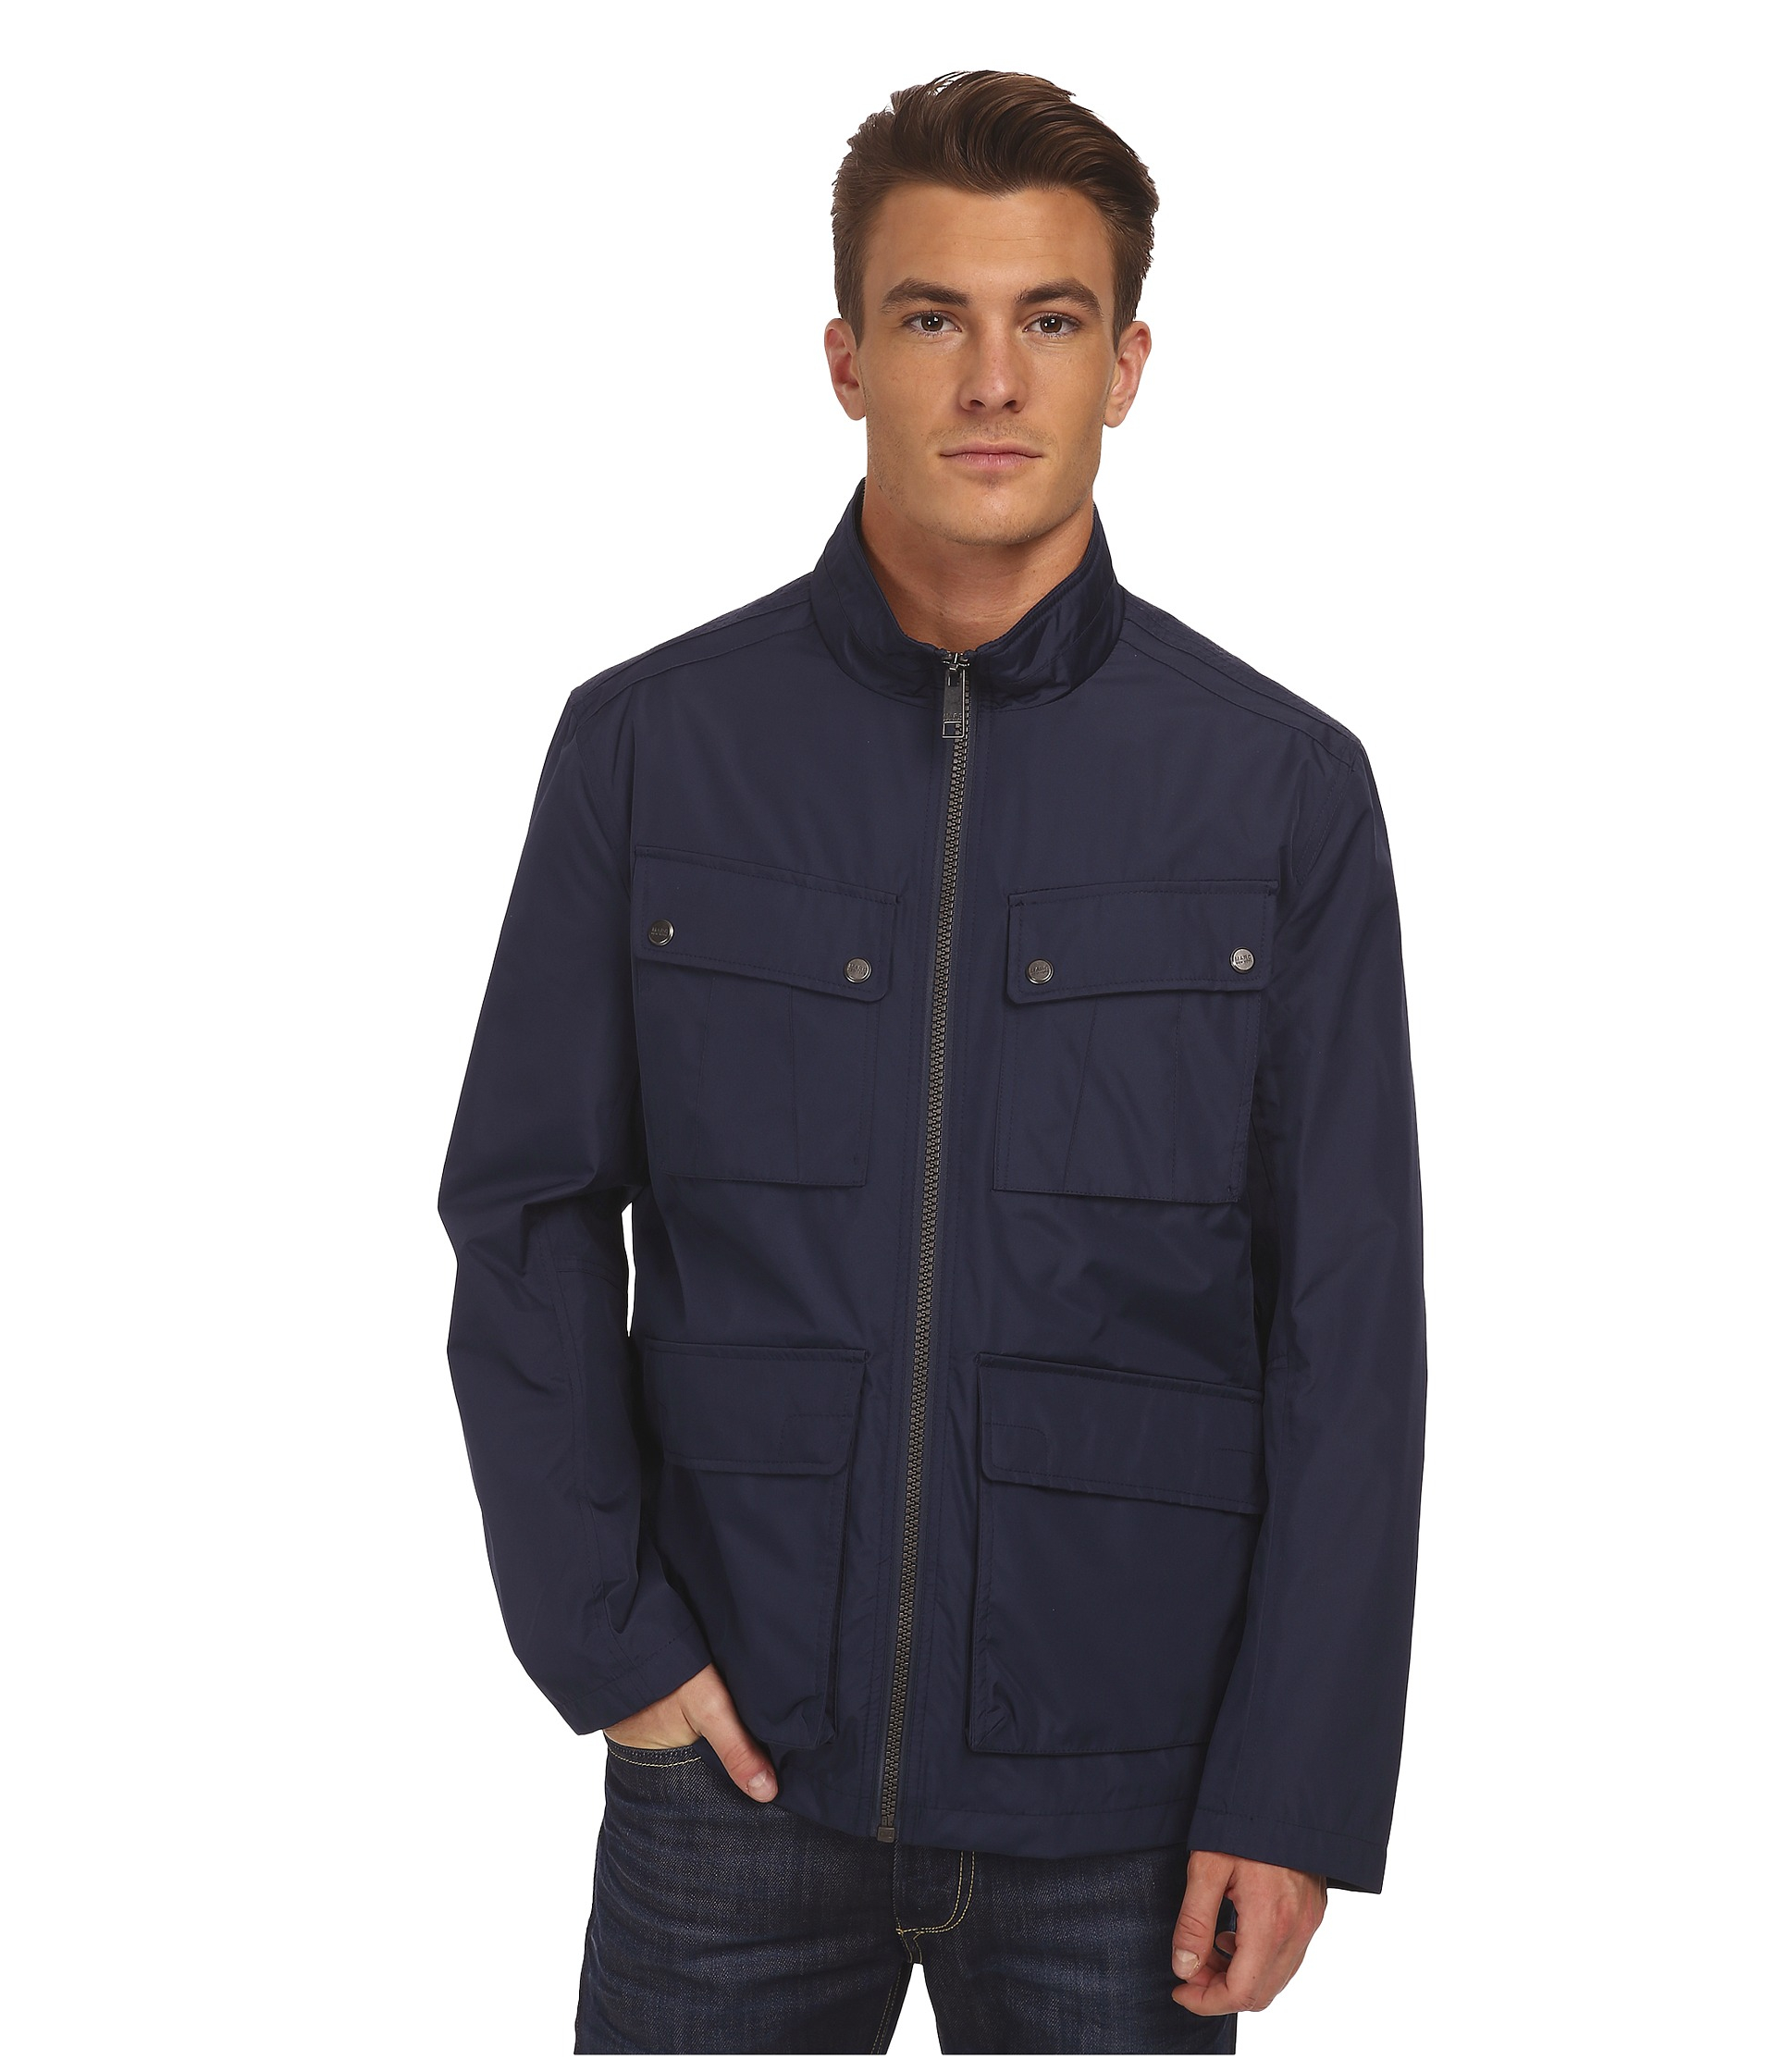 Blue field jacket Rains Free Shipping Best Wholesale Purchase Cheap Outlet In China Outlet Clearance Store Yv2wG9A